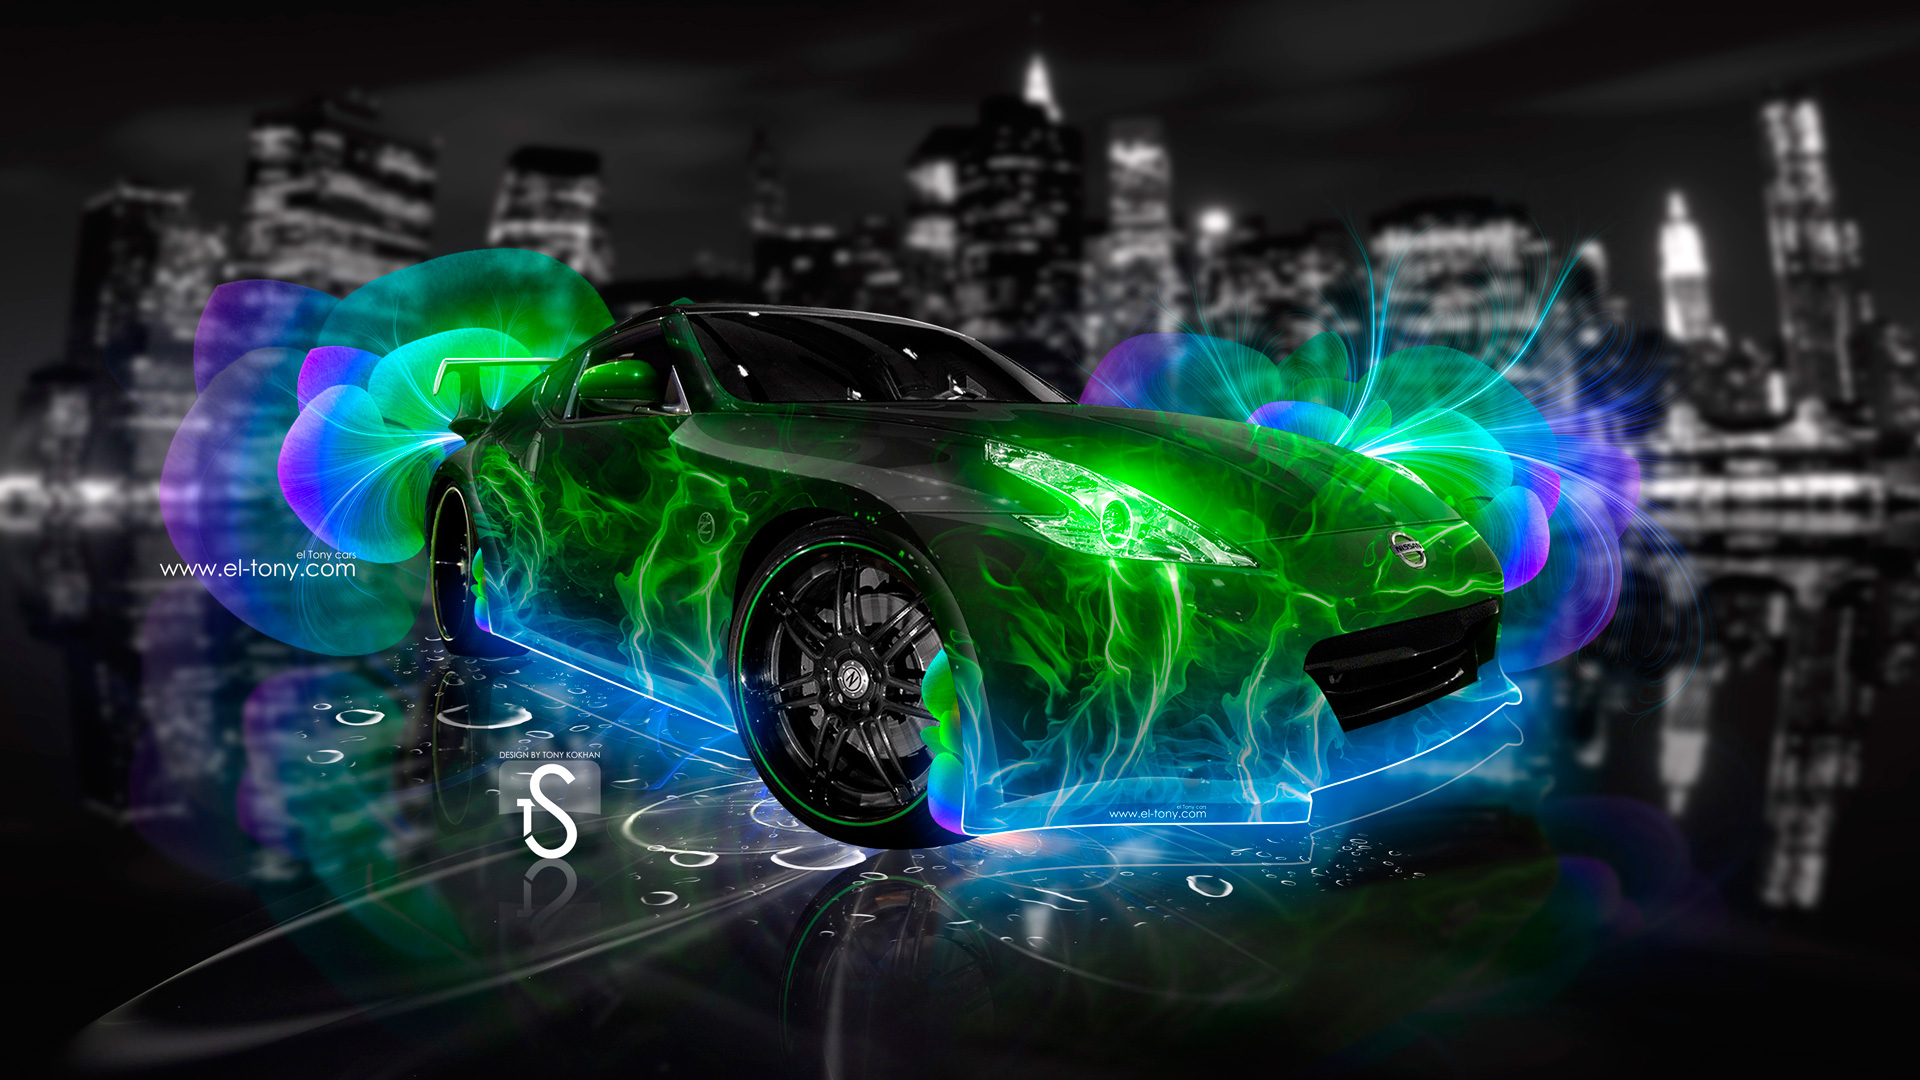 Exceptional Nissan 370 Z Abstract Flowers Neon Green 2013